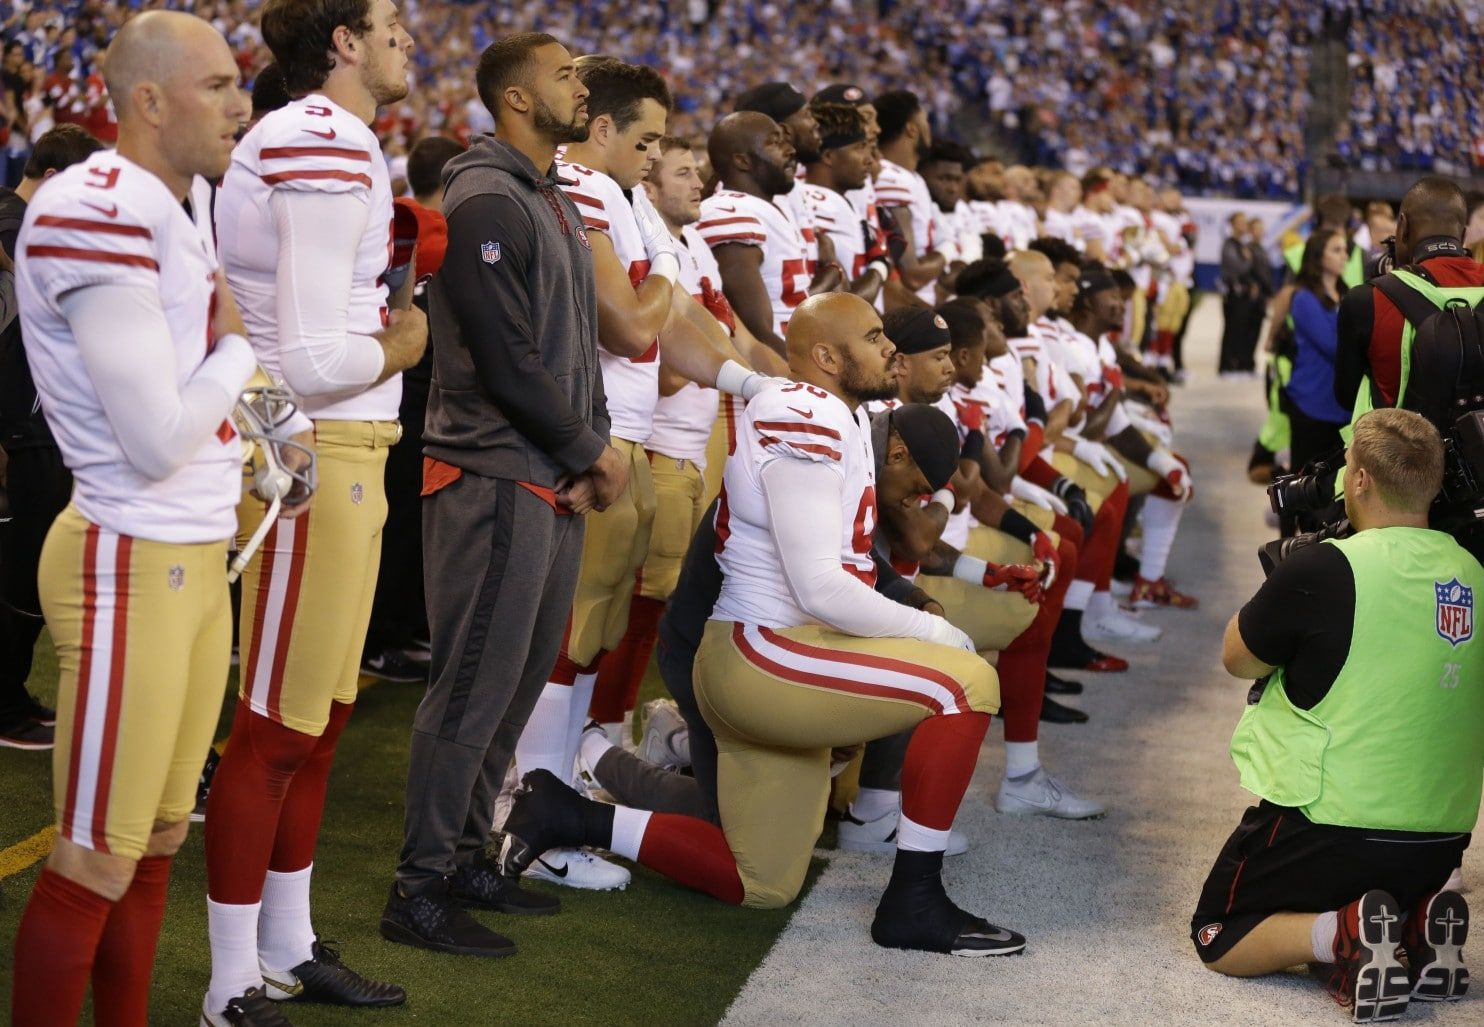 This Is About Systemic Oppression Eric Reid Becomes The Voice Of 49ers Protest With Criticism Of Pence Anthem Protest Kneeling During National Anthem Nfl